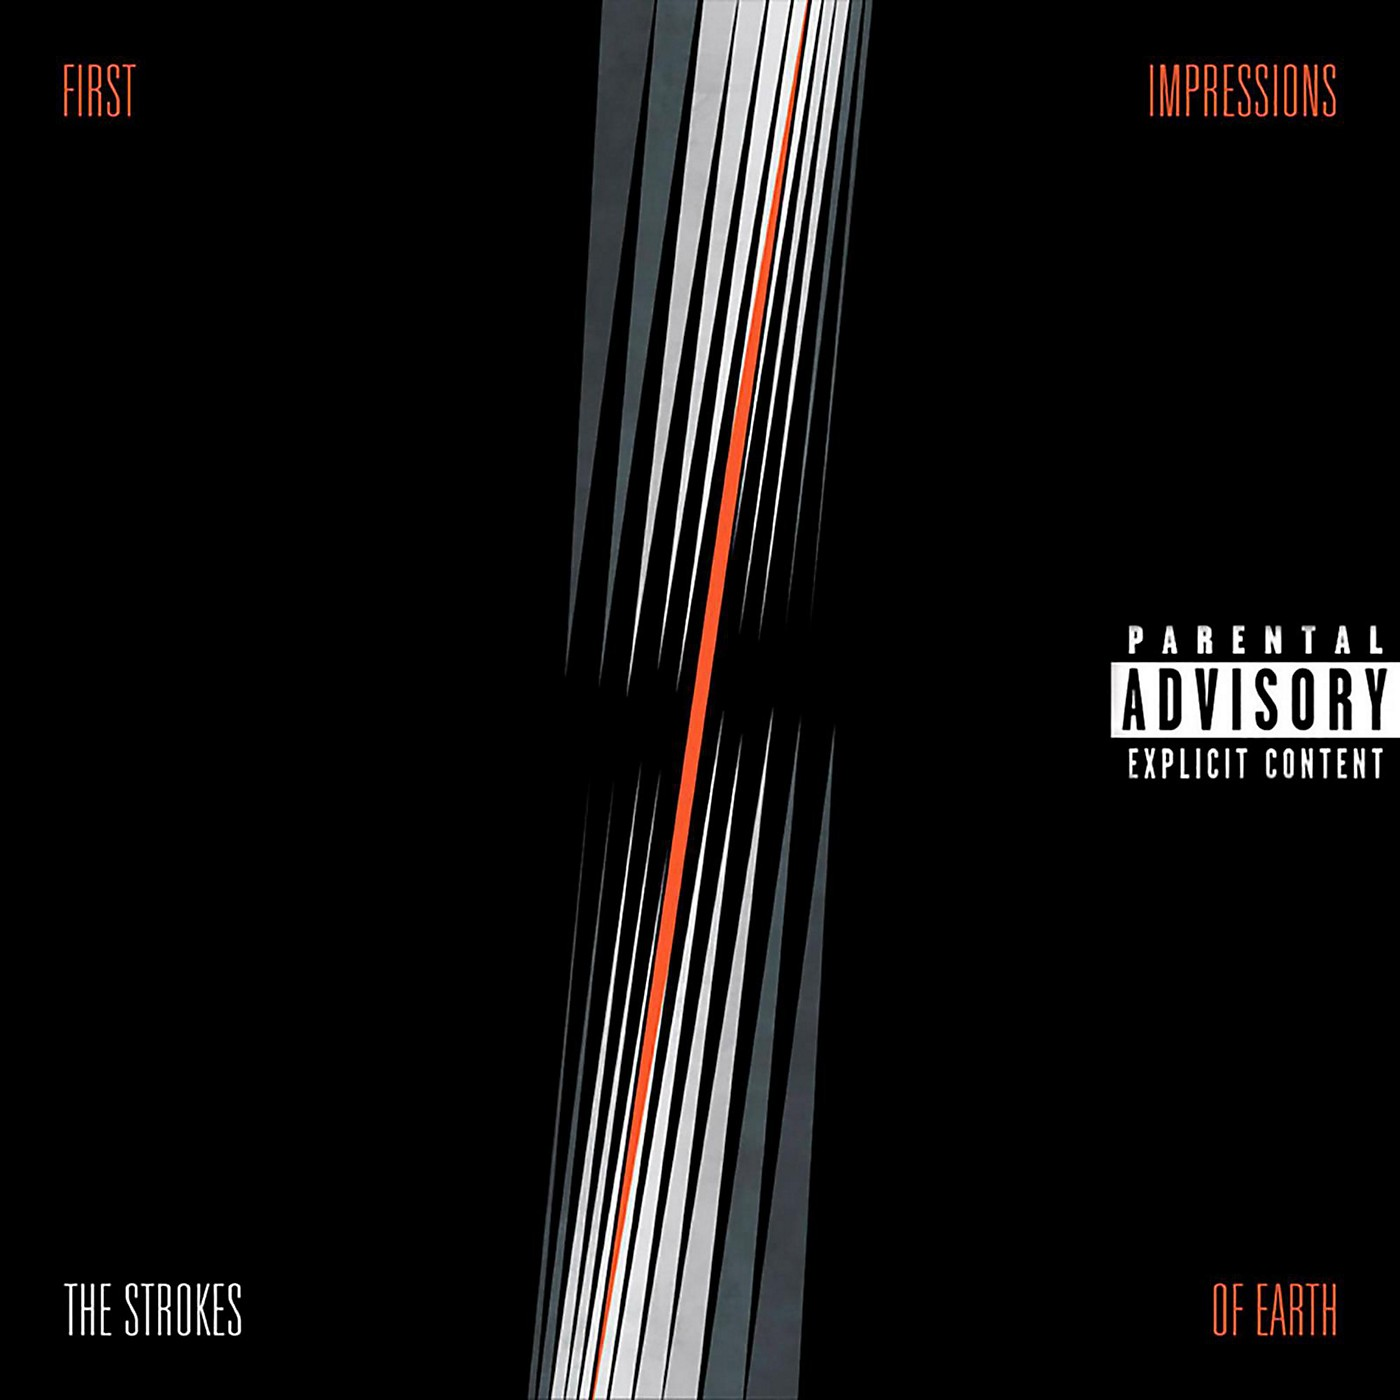 Sony The Strokes - First Impressions Of Earth (Explicit) thumbnail